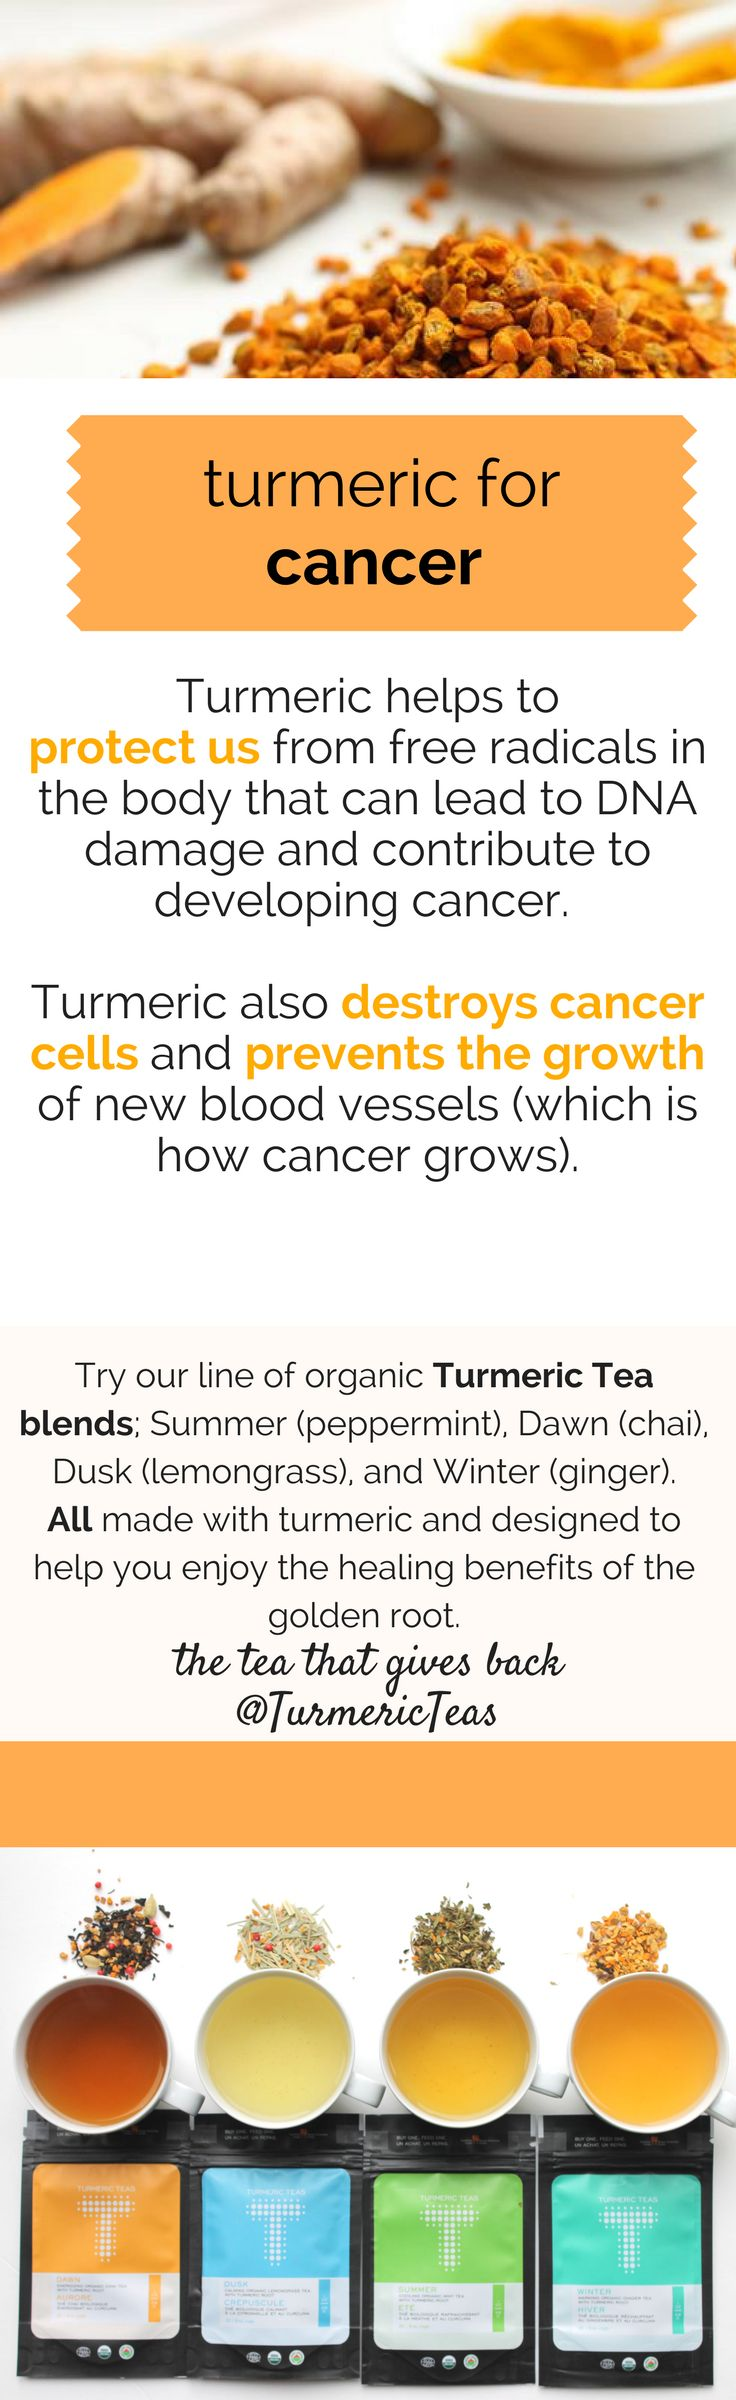 Prevent the growth and destroy cancer cells with turmeric. It protects us from the free radicals in the body that can lead to DNA damage and developing cancer. Click to read our full blog on preventing cancer with #turmeric on our website. #turmericteas #cancer #cancertreatment #naturalremedy #turmericbenefits #turmerichealth